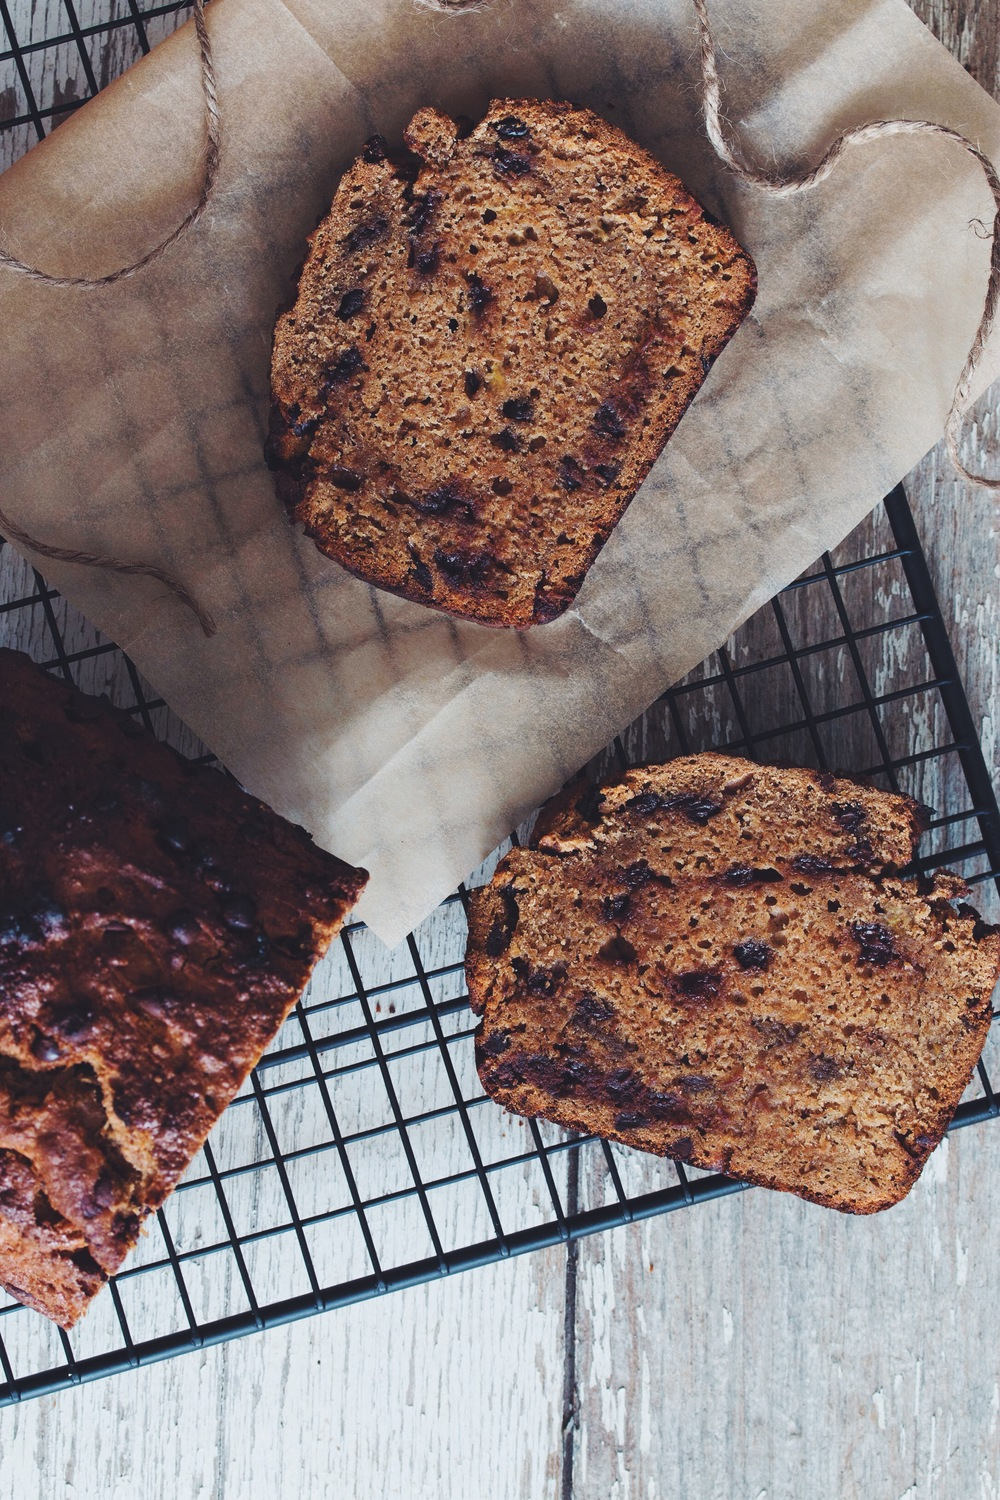 #vegan chocolate chip banana bread | RECIPE on hotforfoodblog.com